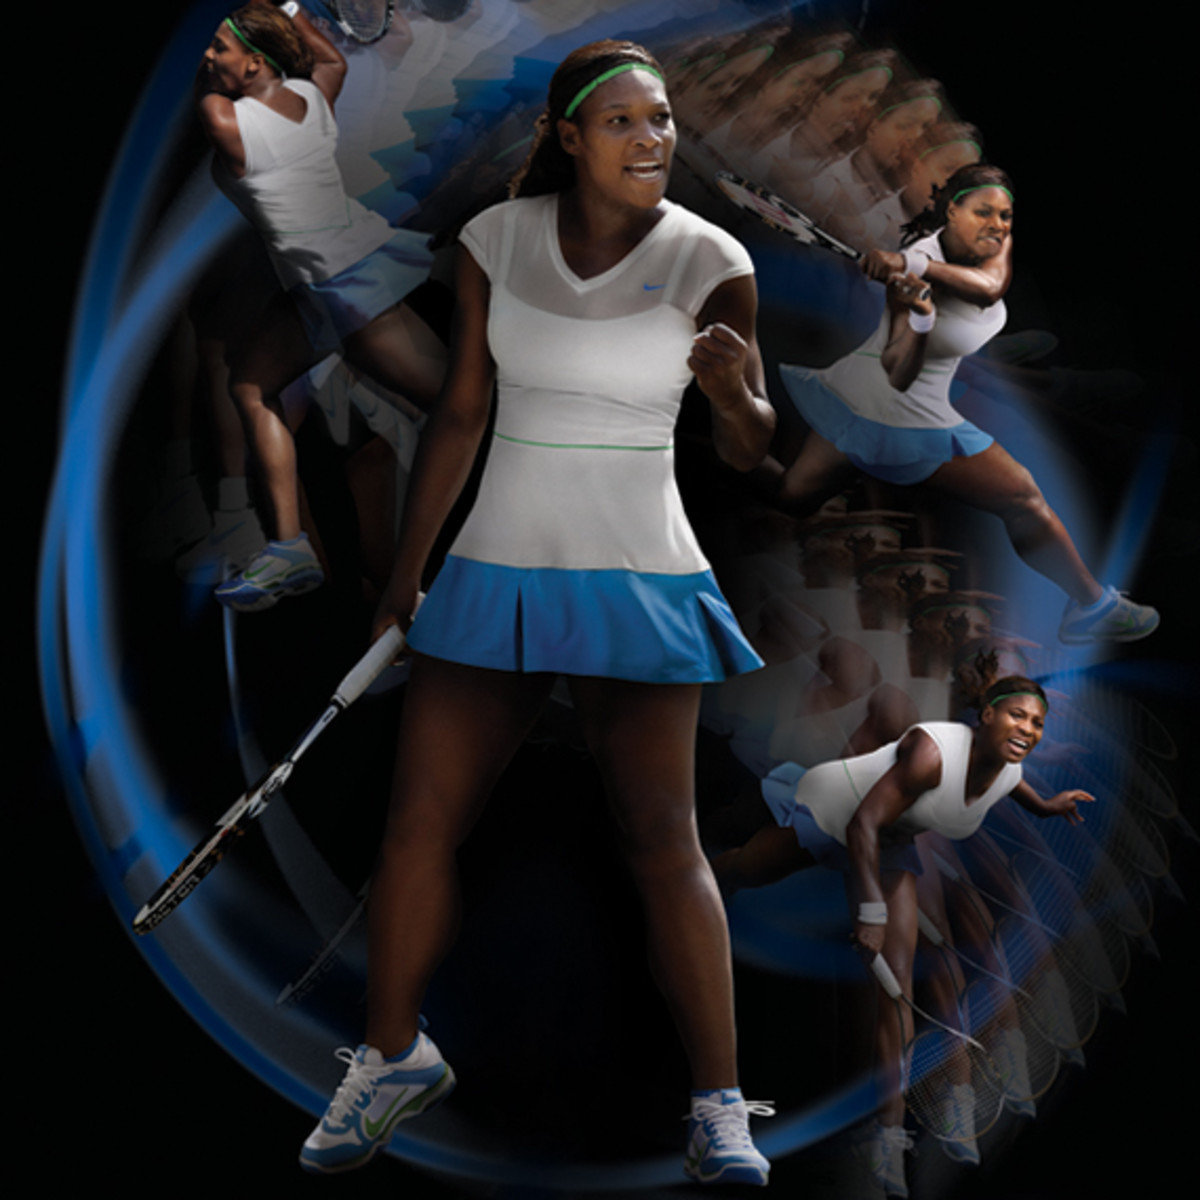 nike-tennis-2011-australian-open-serena-williams-11